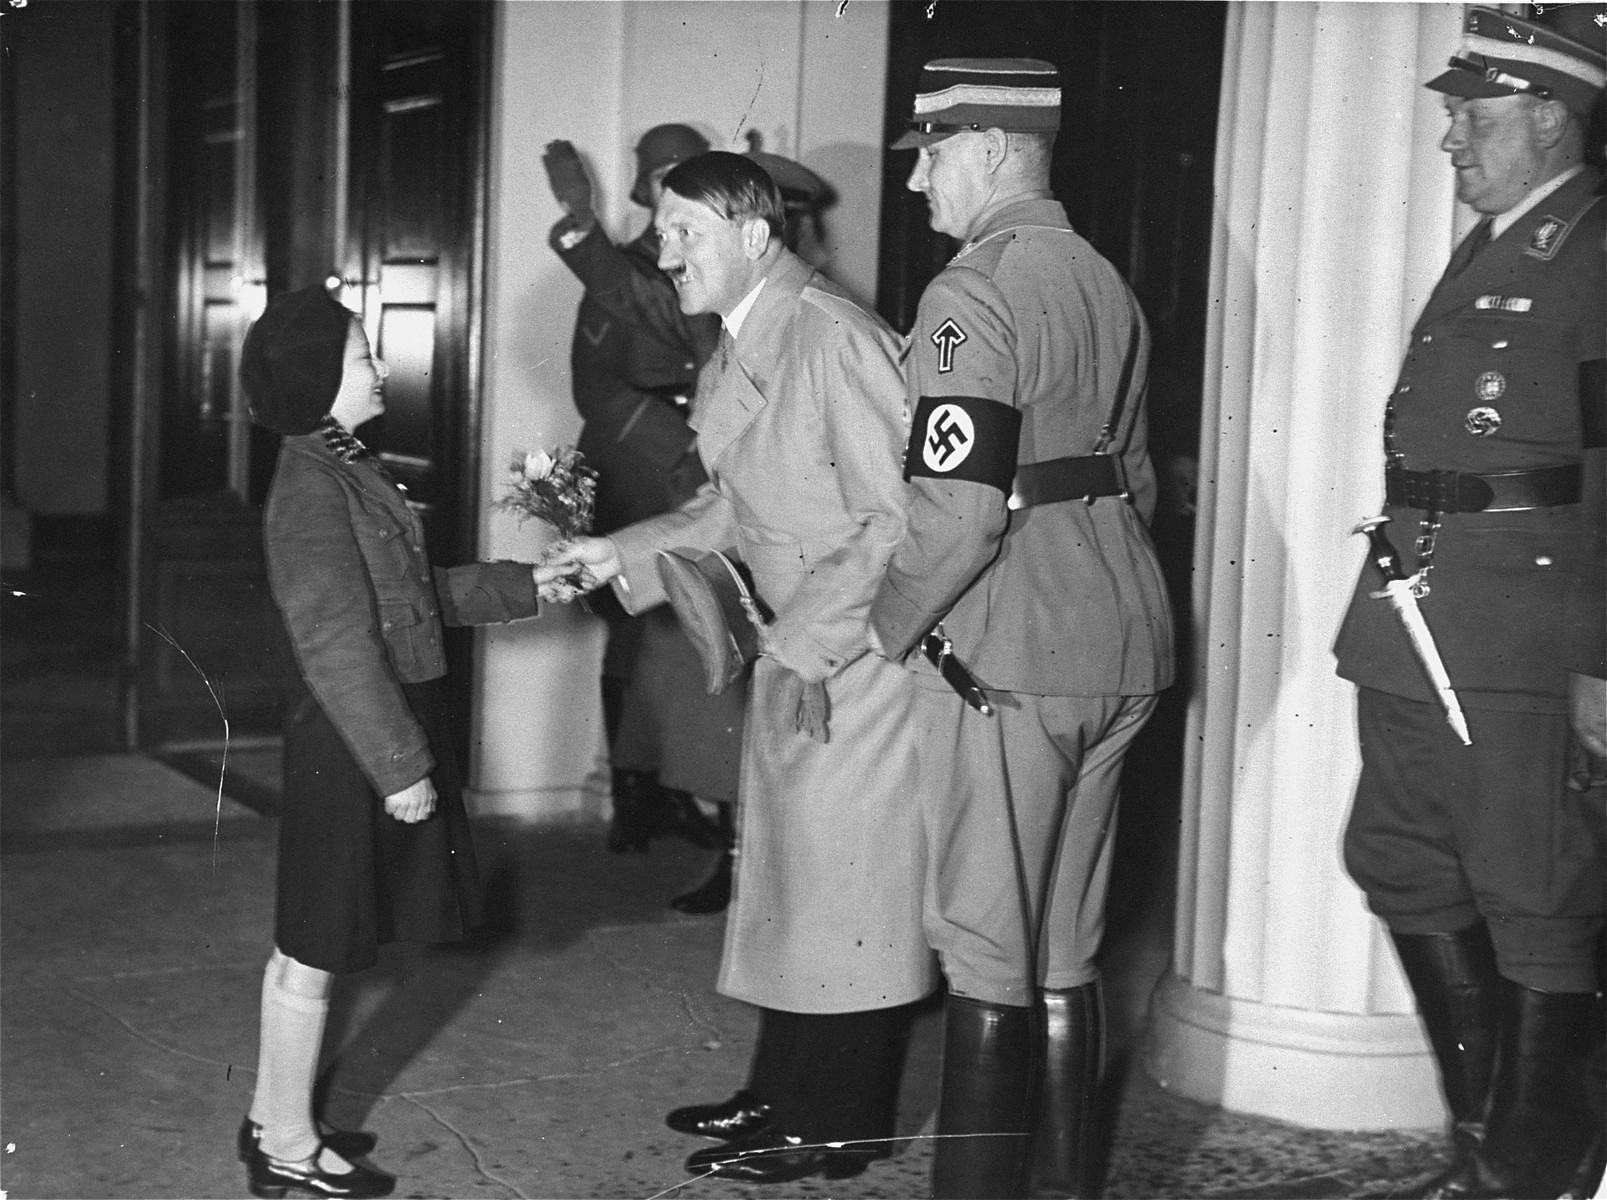 Adolf Hitler greets the daughter of General Karl-Siegfried Litzmann at a Nazi Party convention.